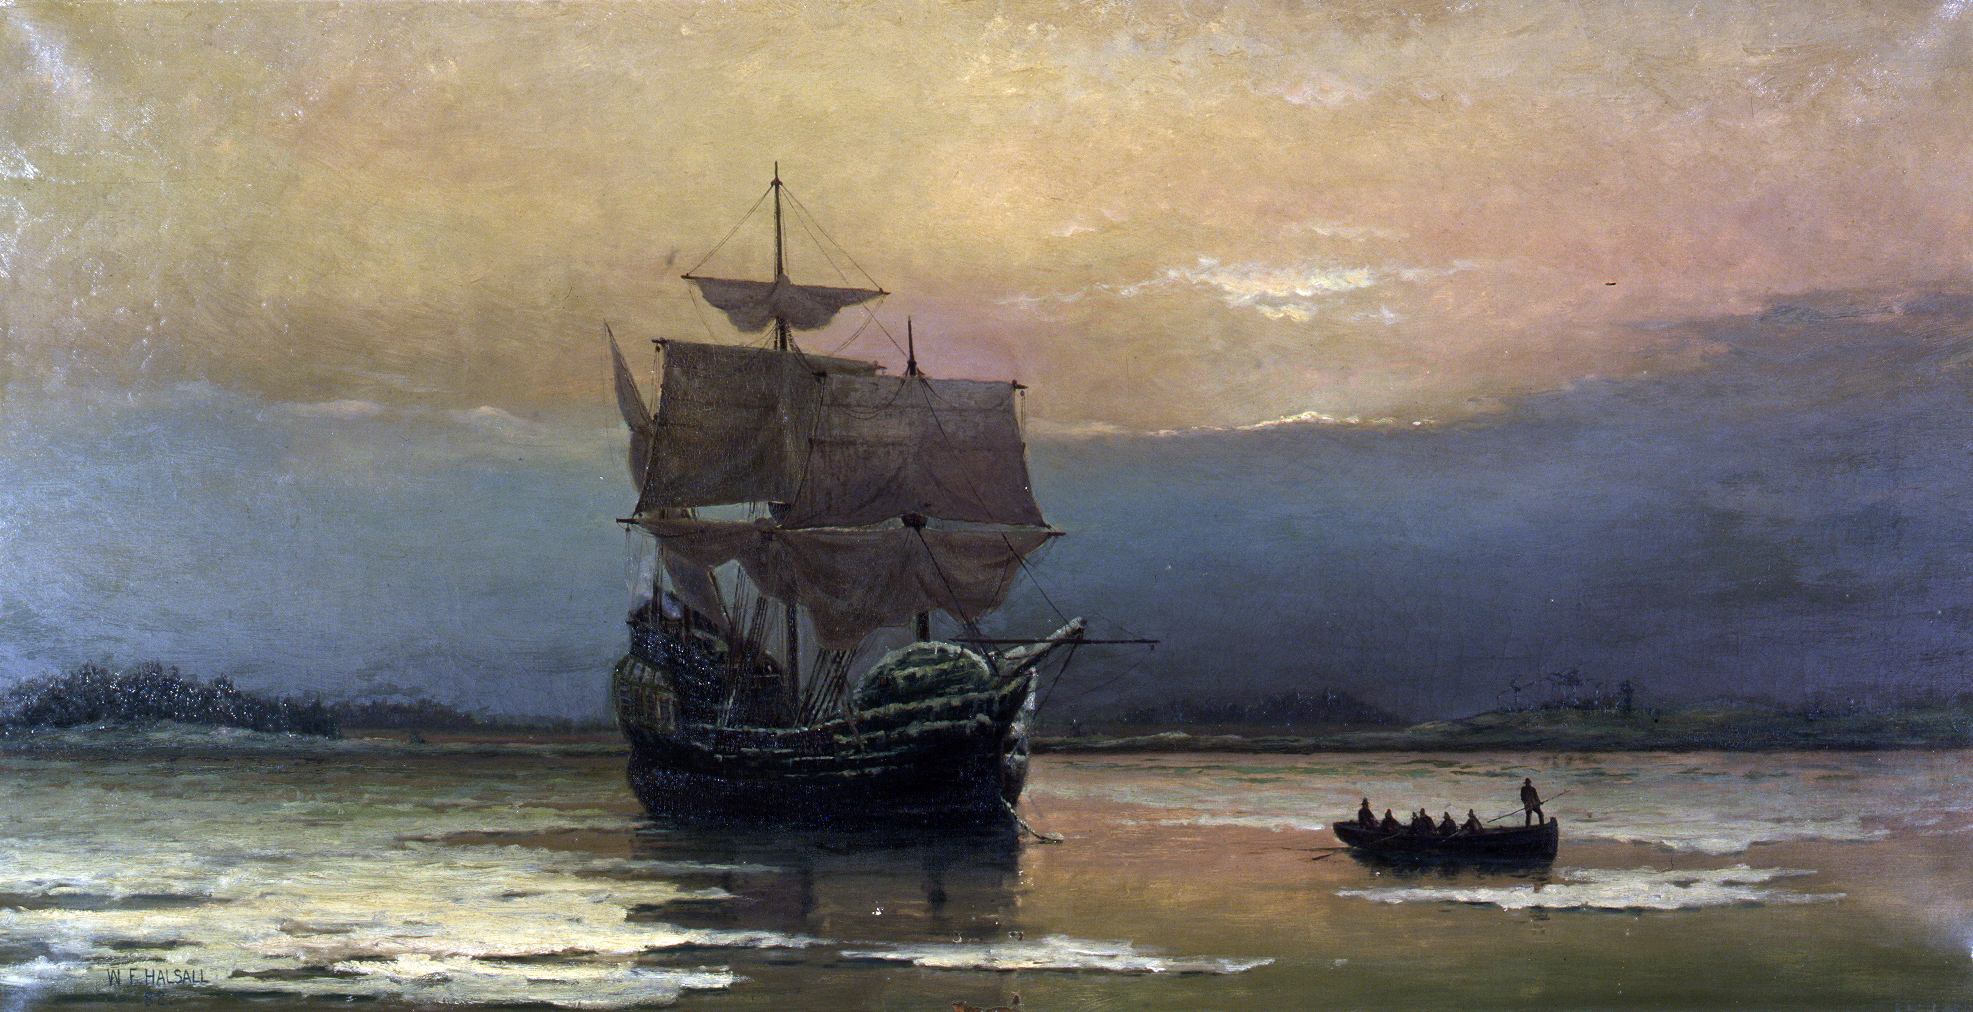 Painting of the Mayflower.